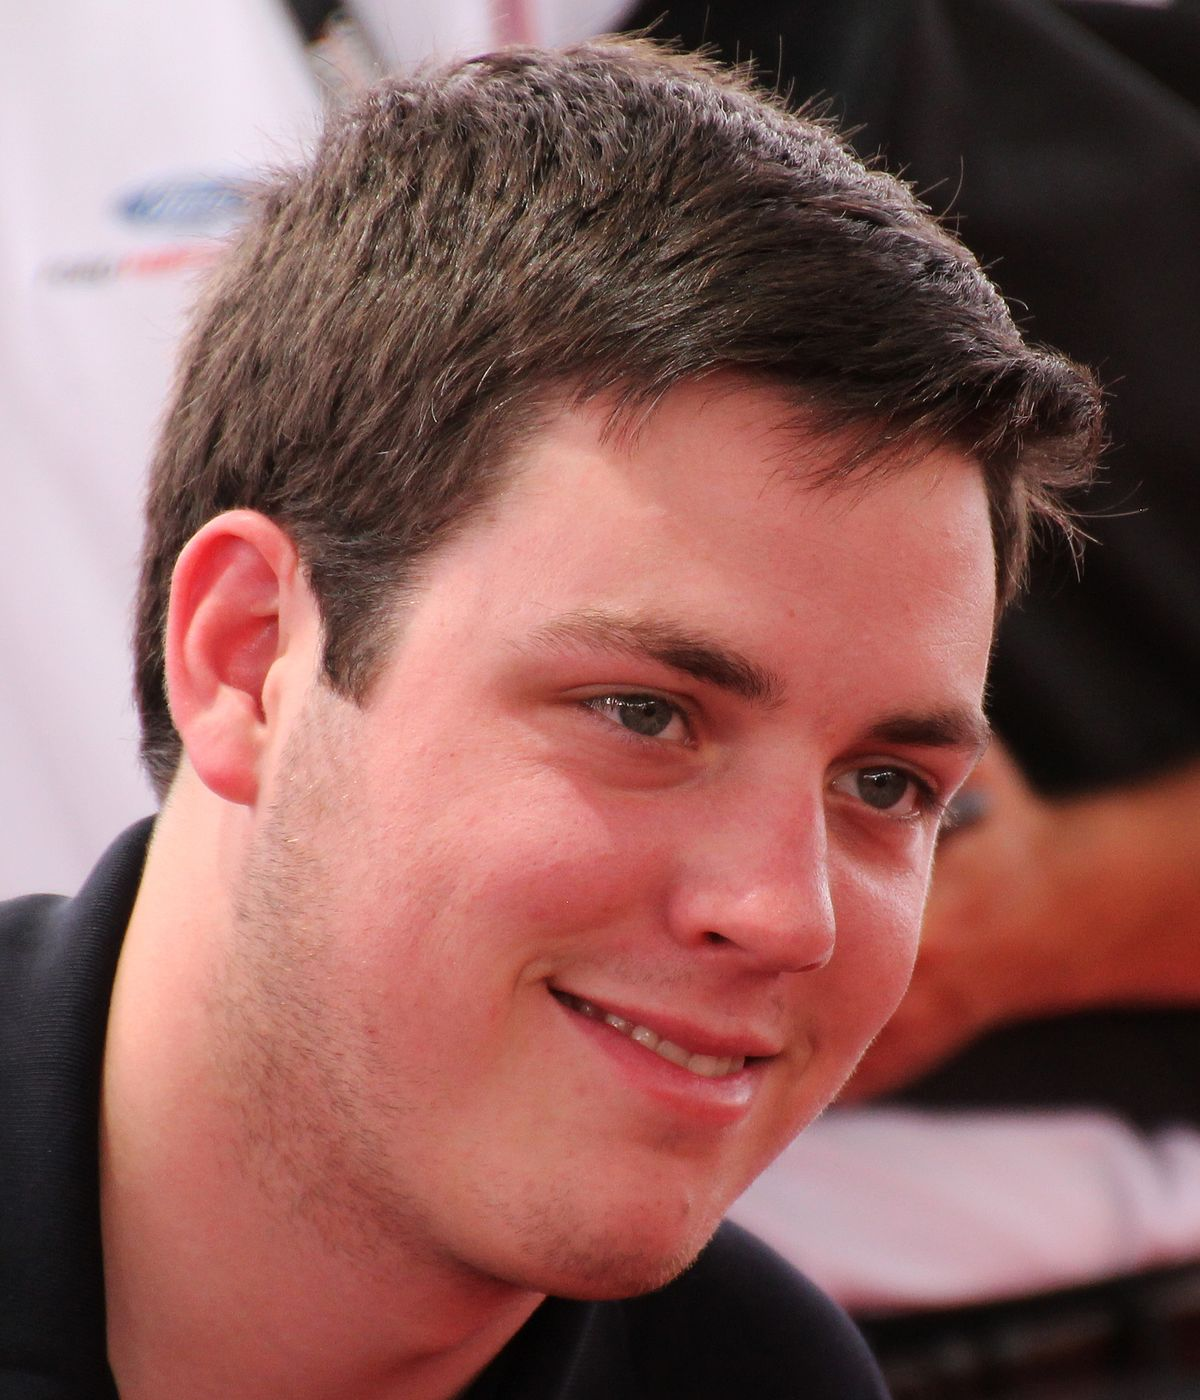 Alex Bowman Wikipedia